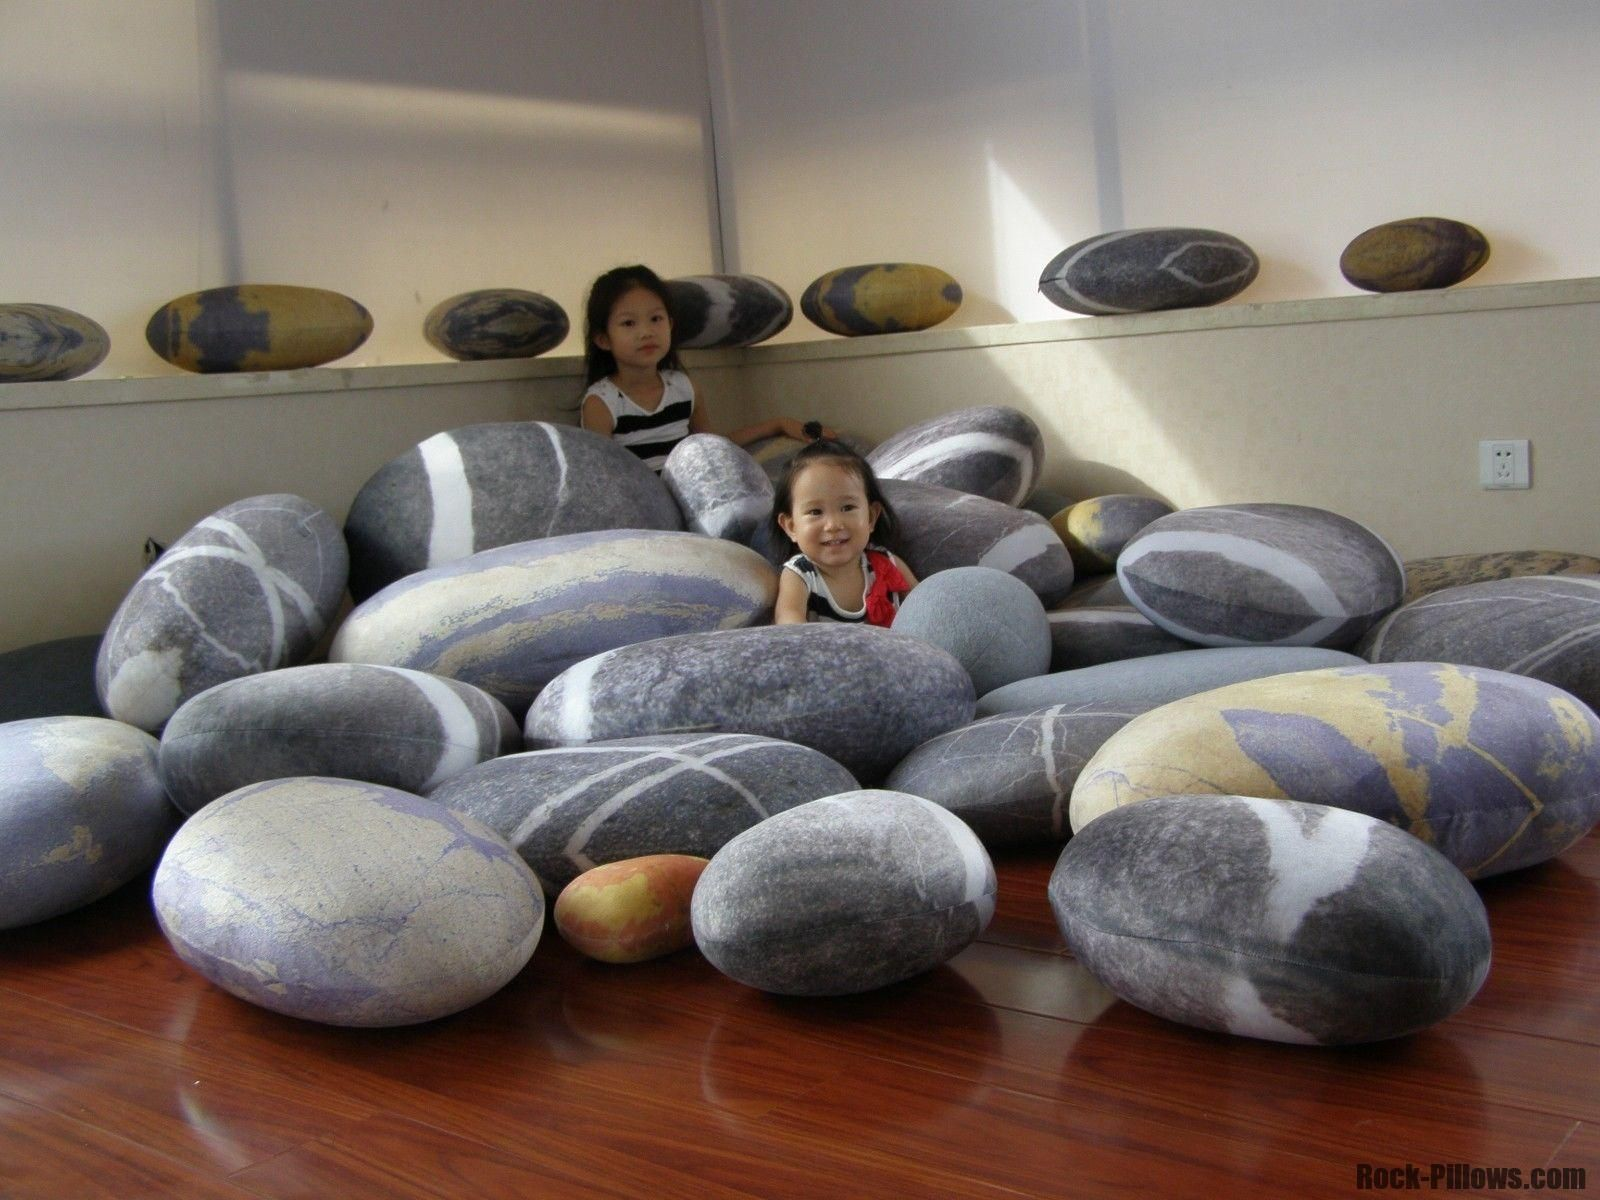 Wonderful Coolest Pillows Help Drive Tedium Away From Your Home   Rock . Great Ideas